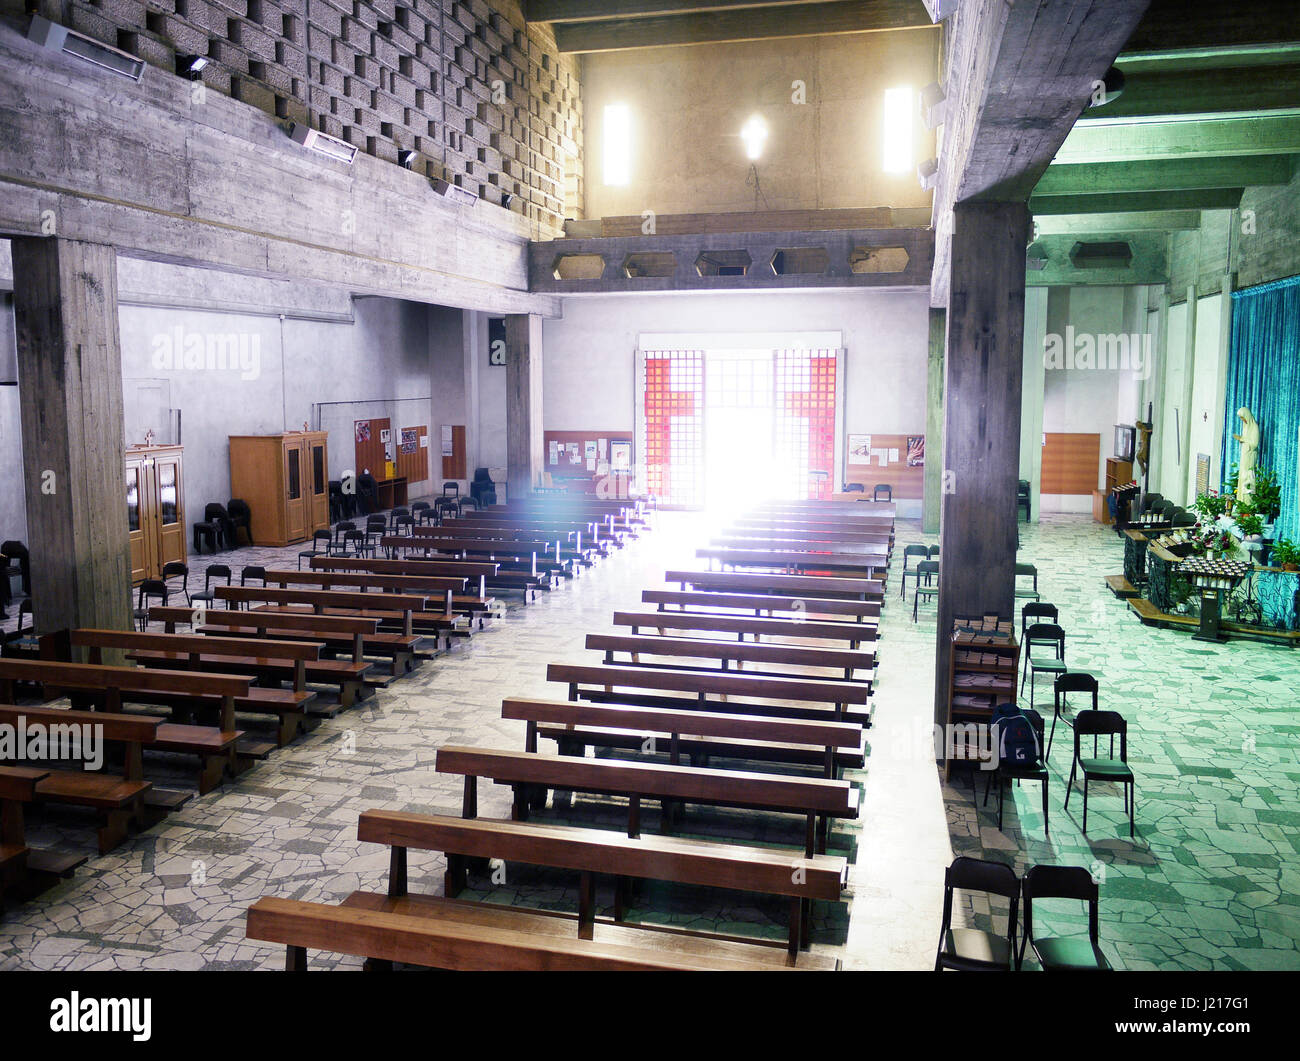 Modern church interior stock photos modern church for Michael j arlen living room war